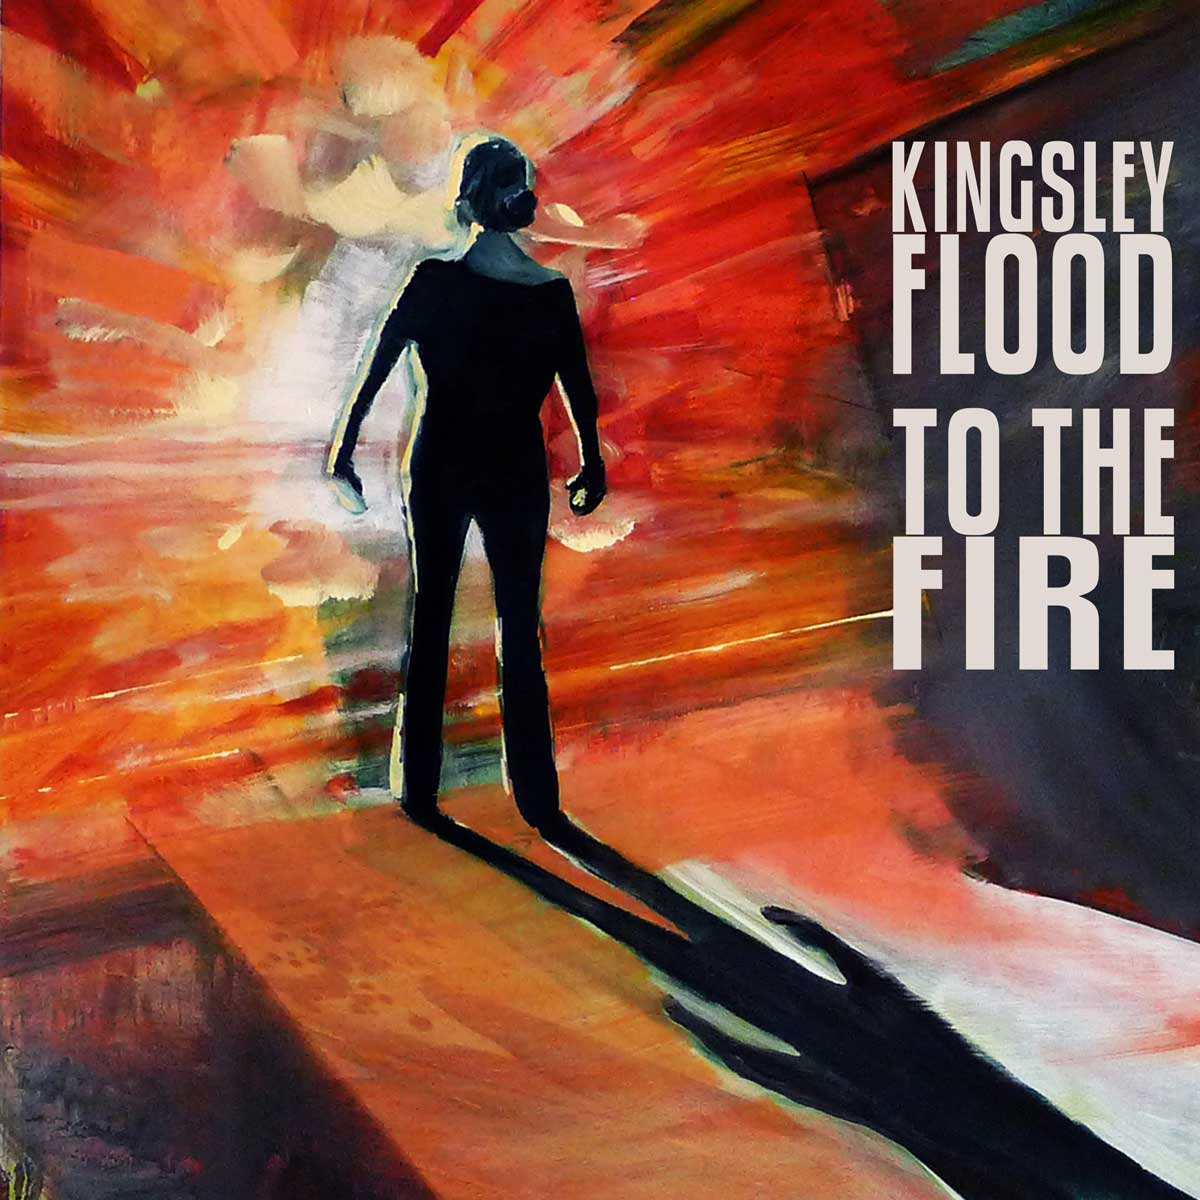 """KINGSLEY FLOOD TRACK: """"All In All"""" ALBUM:  To The Fire (EP)   Official Site 